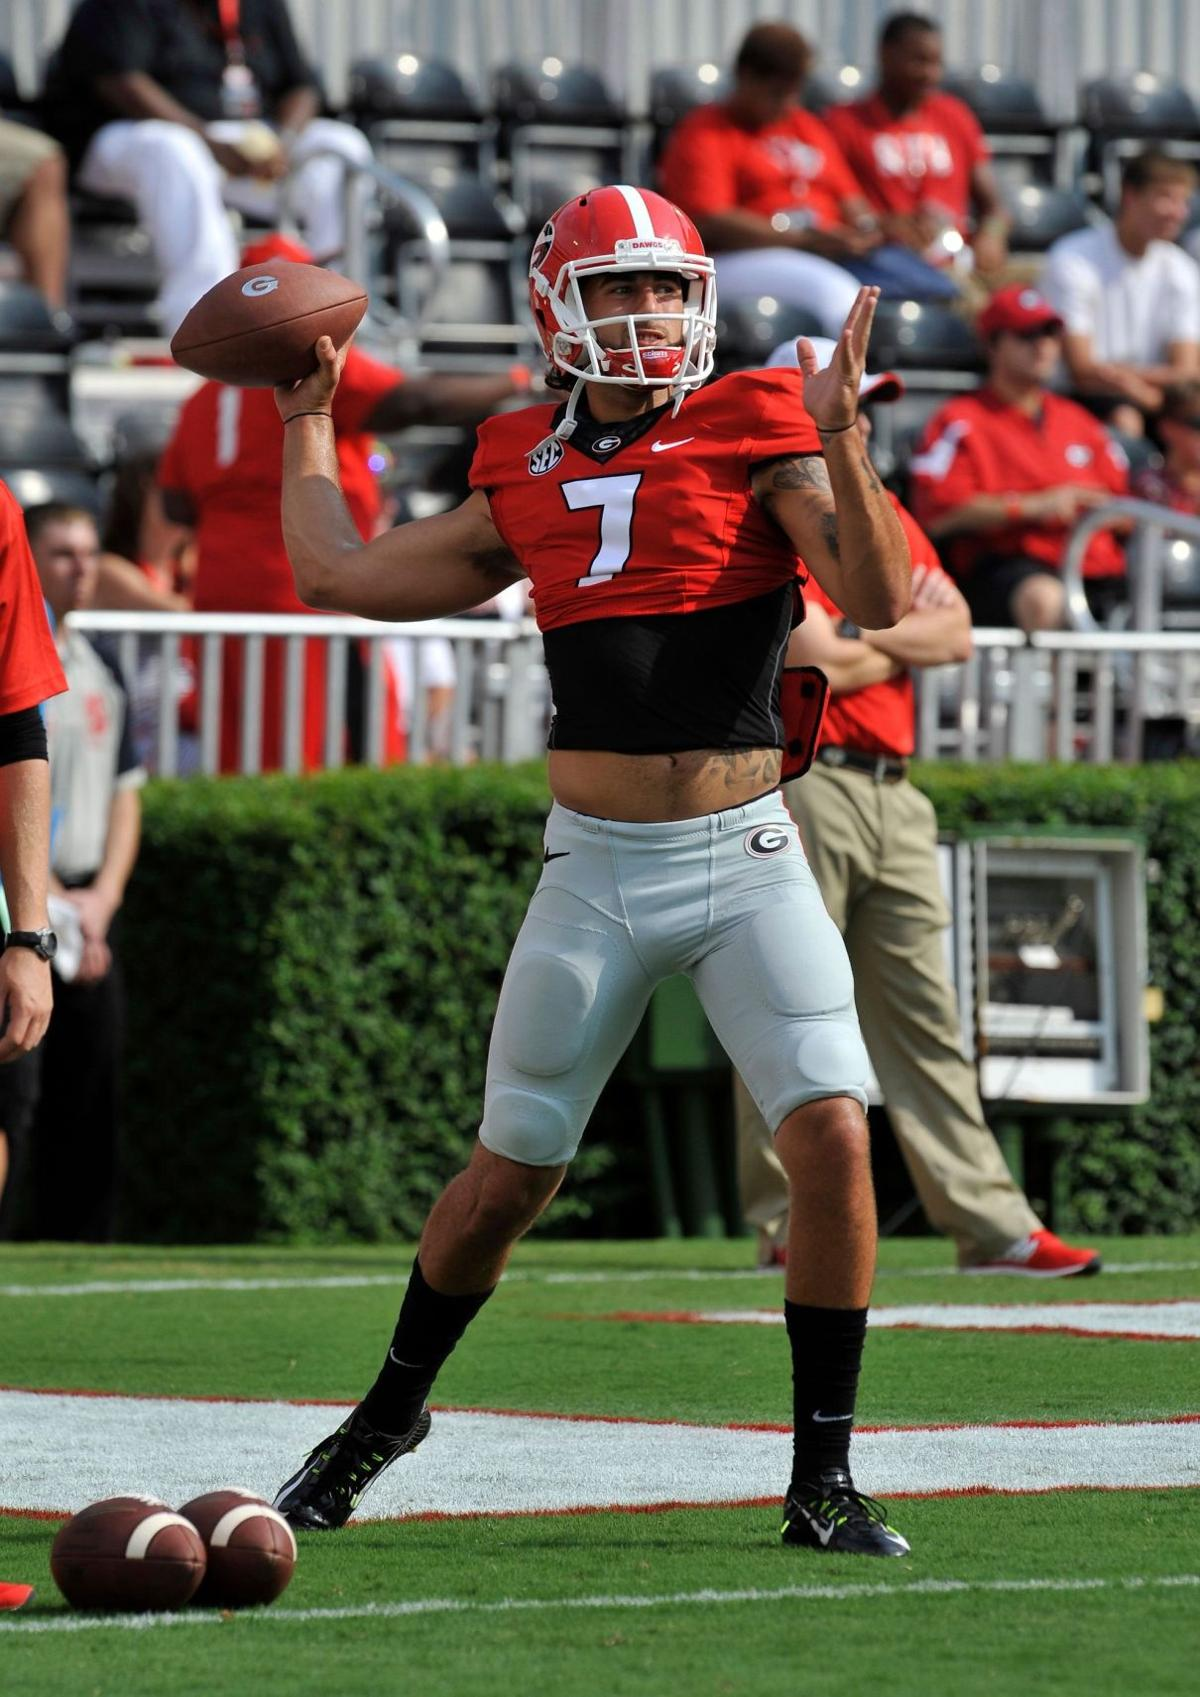 Ex-Stratford QB Park to sign with Iowa State